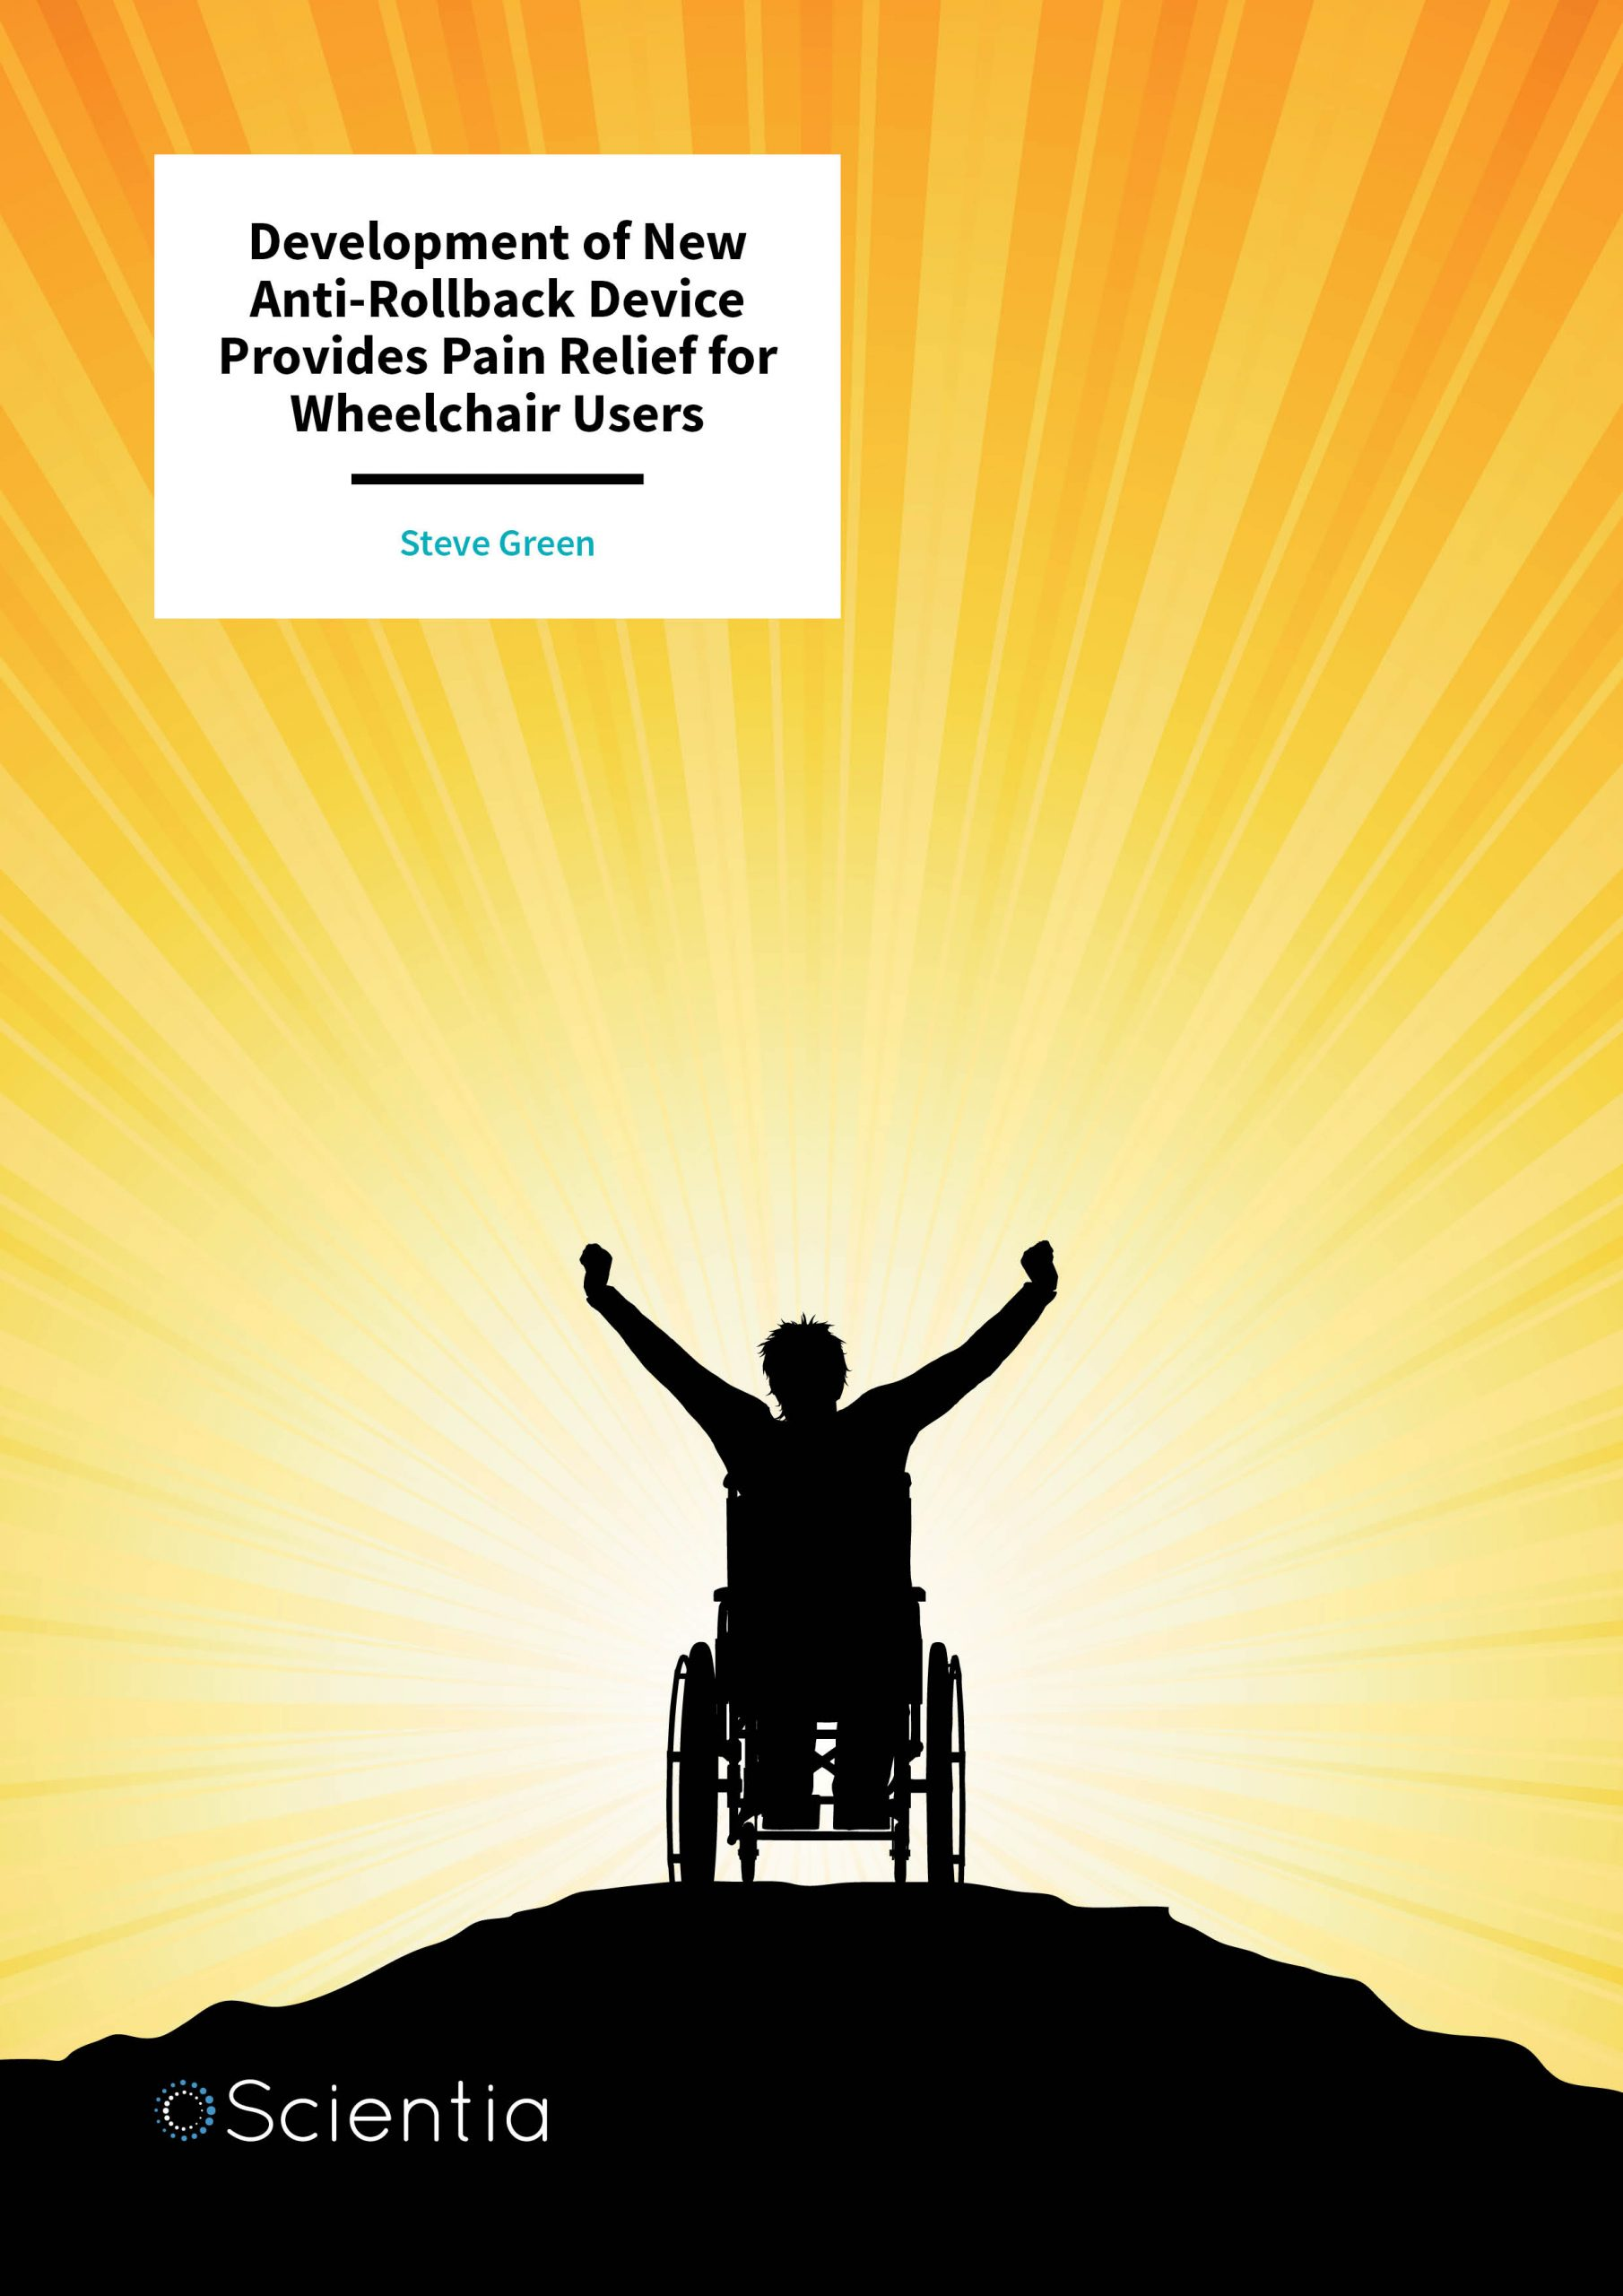 Steve Green – Development of New Anti-Rollback Device Provides Pain Relief for Wheelchair Users